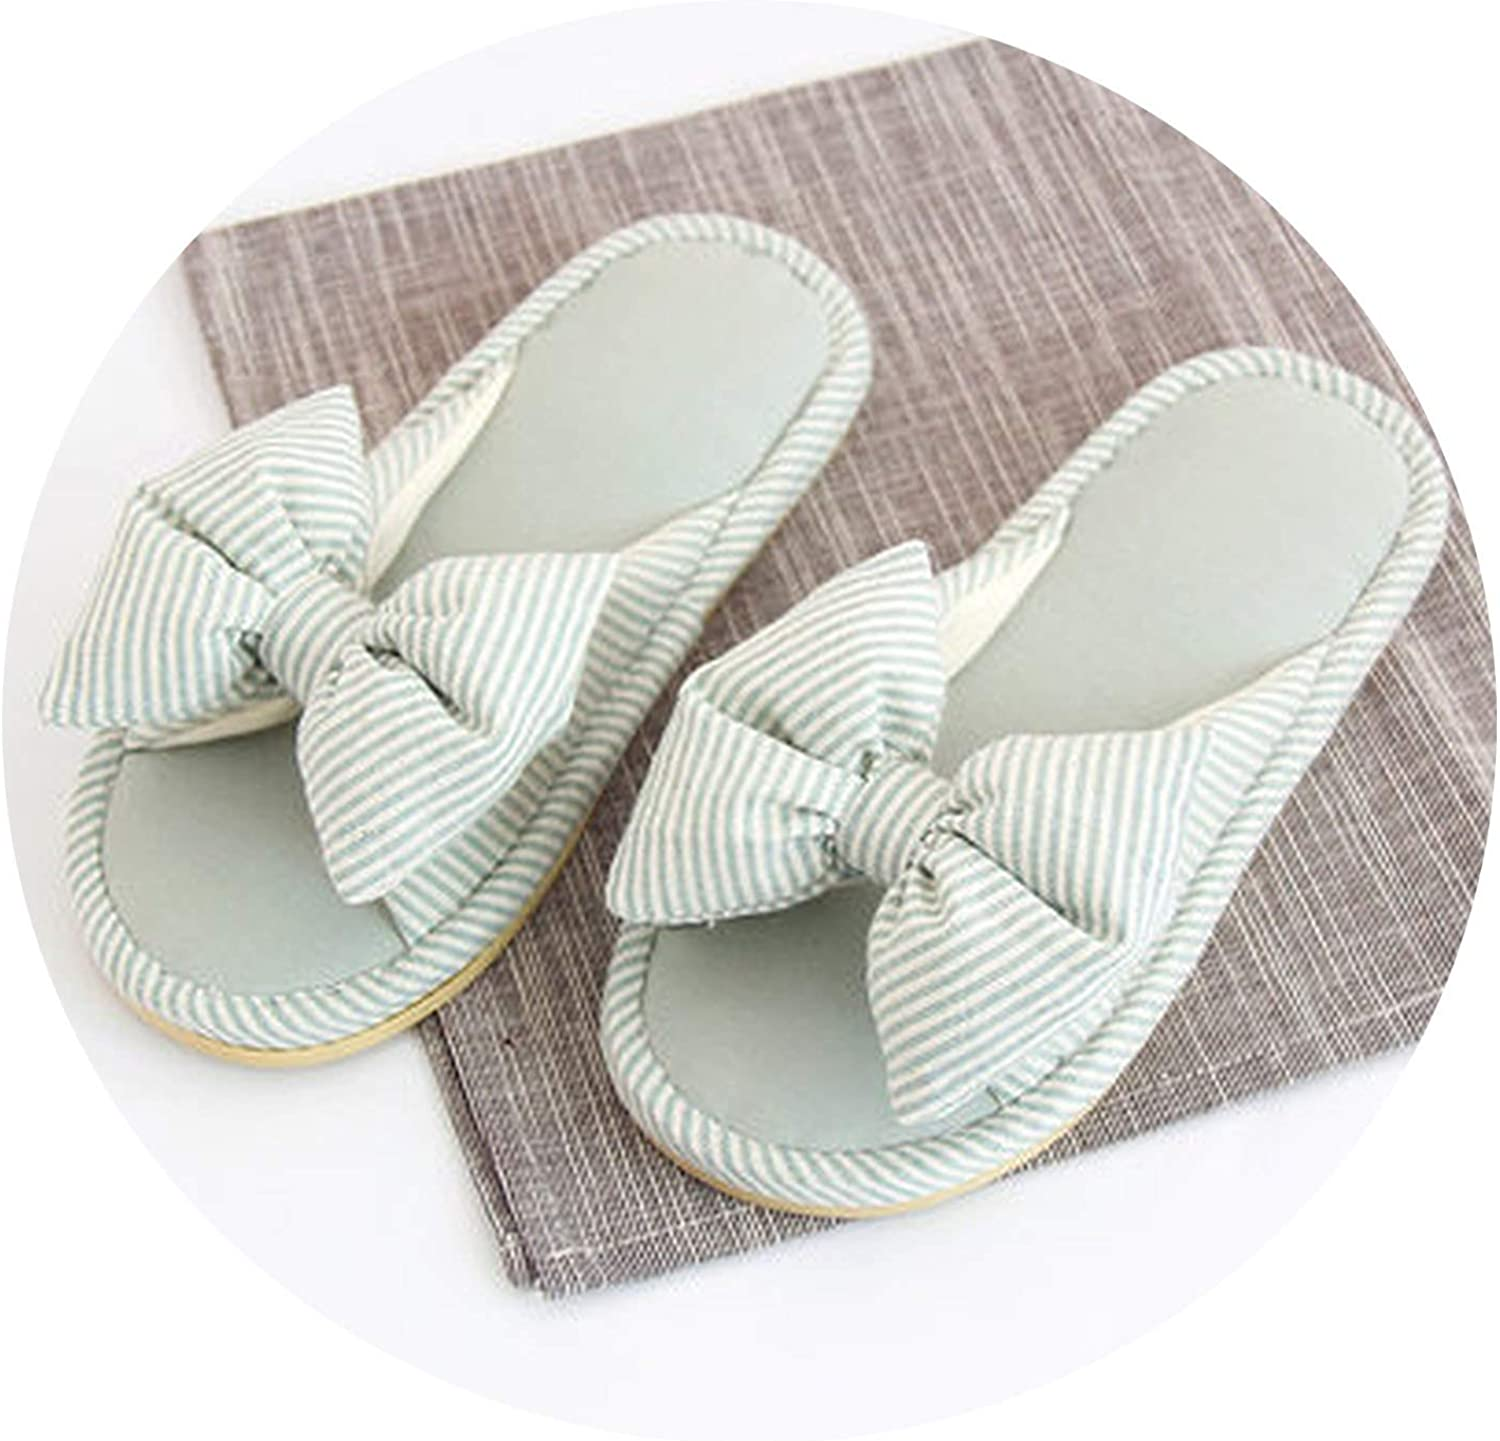 PilotageAuto Home Slippers Spring Autumn Butterfly-Knot Indoor shoes Cotton Fabric Striped Women Slippers